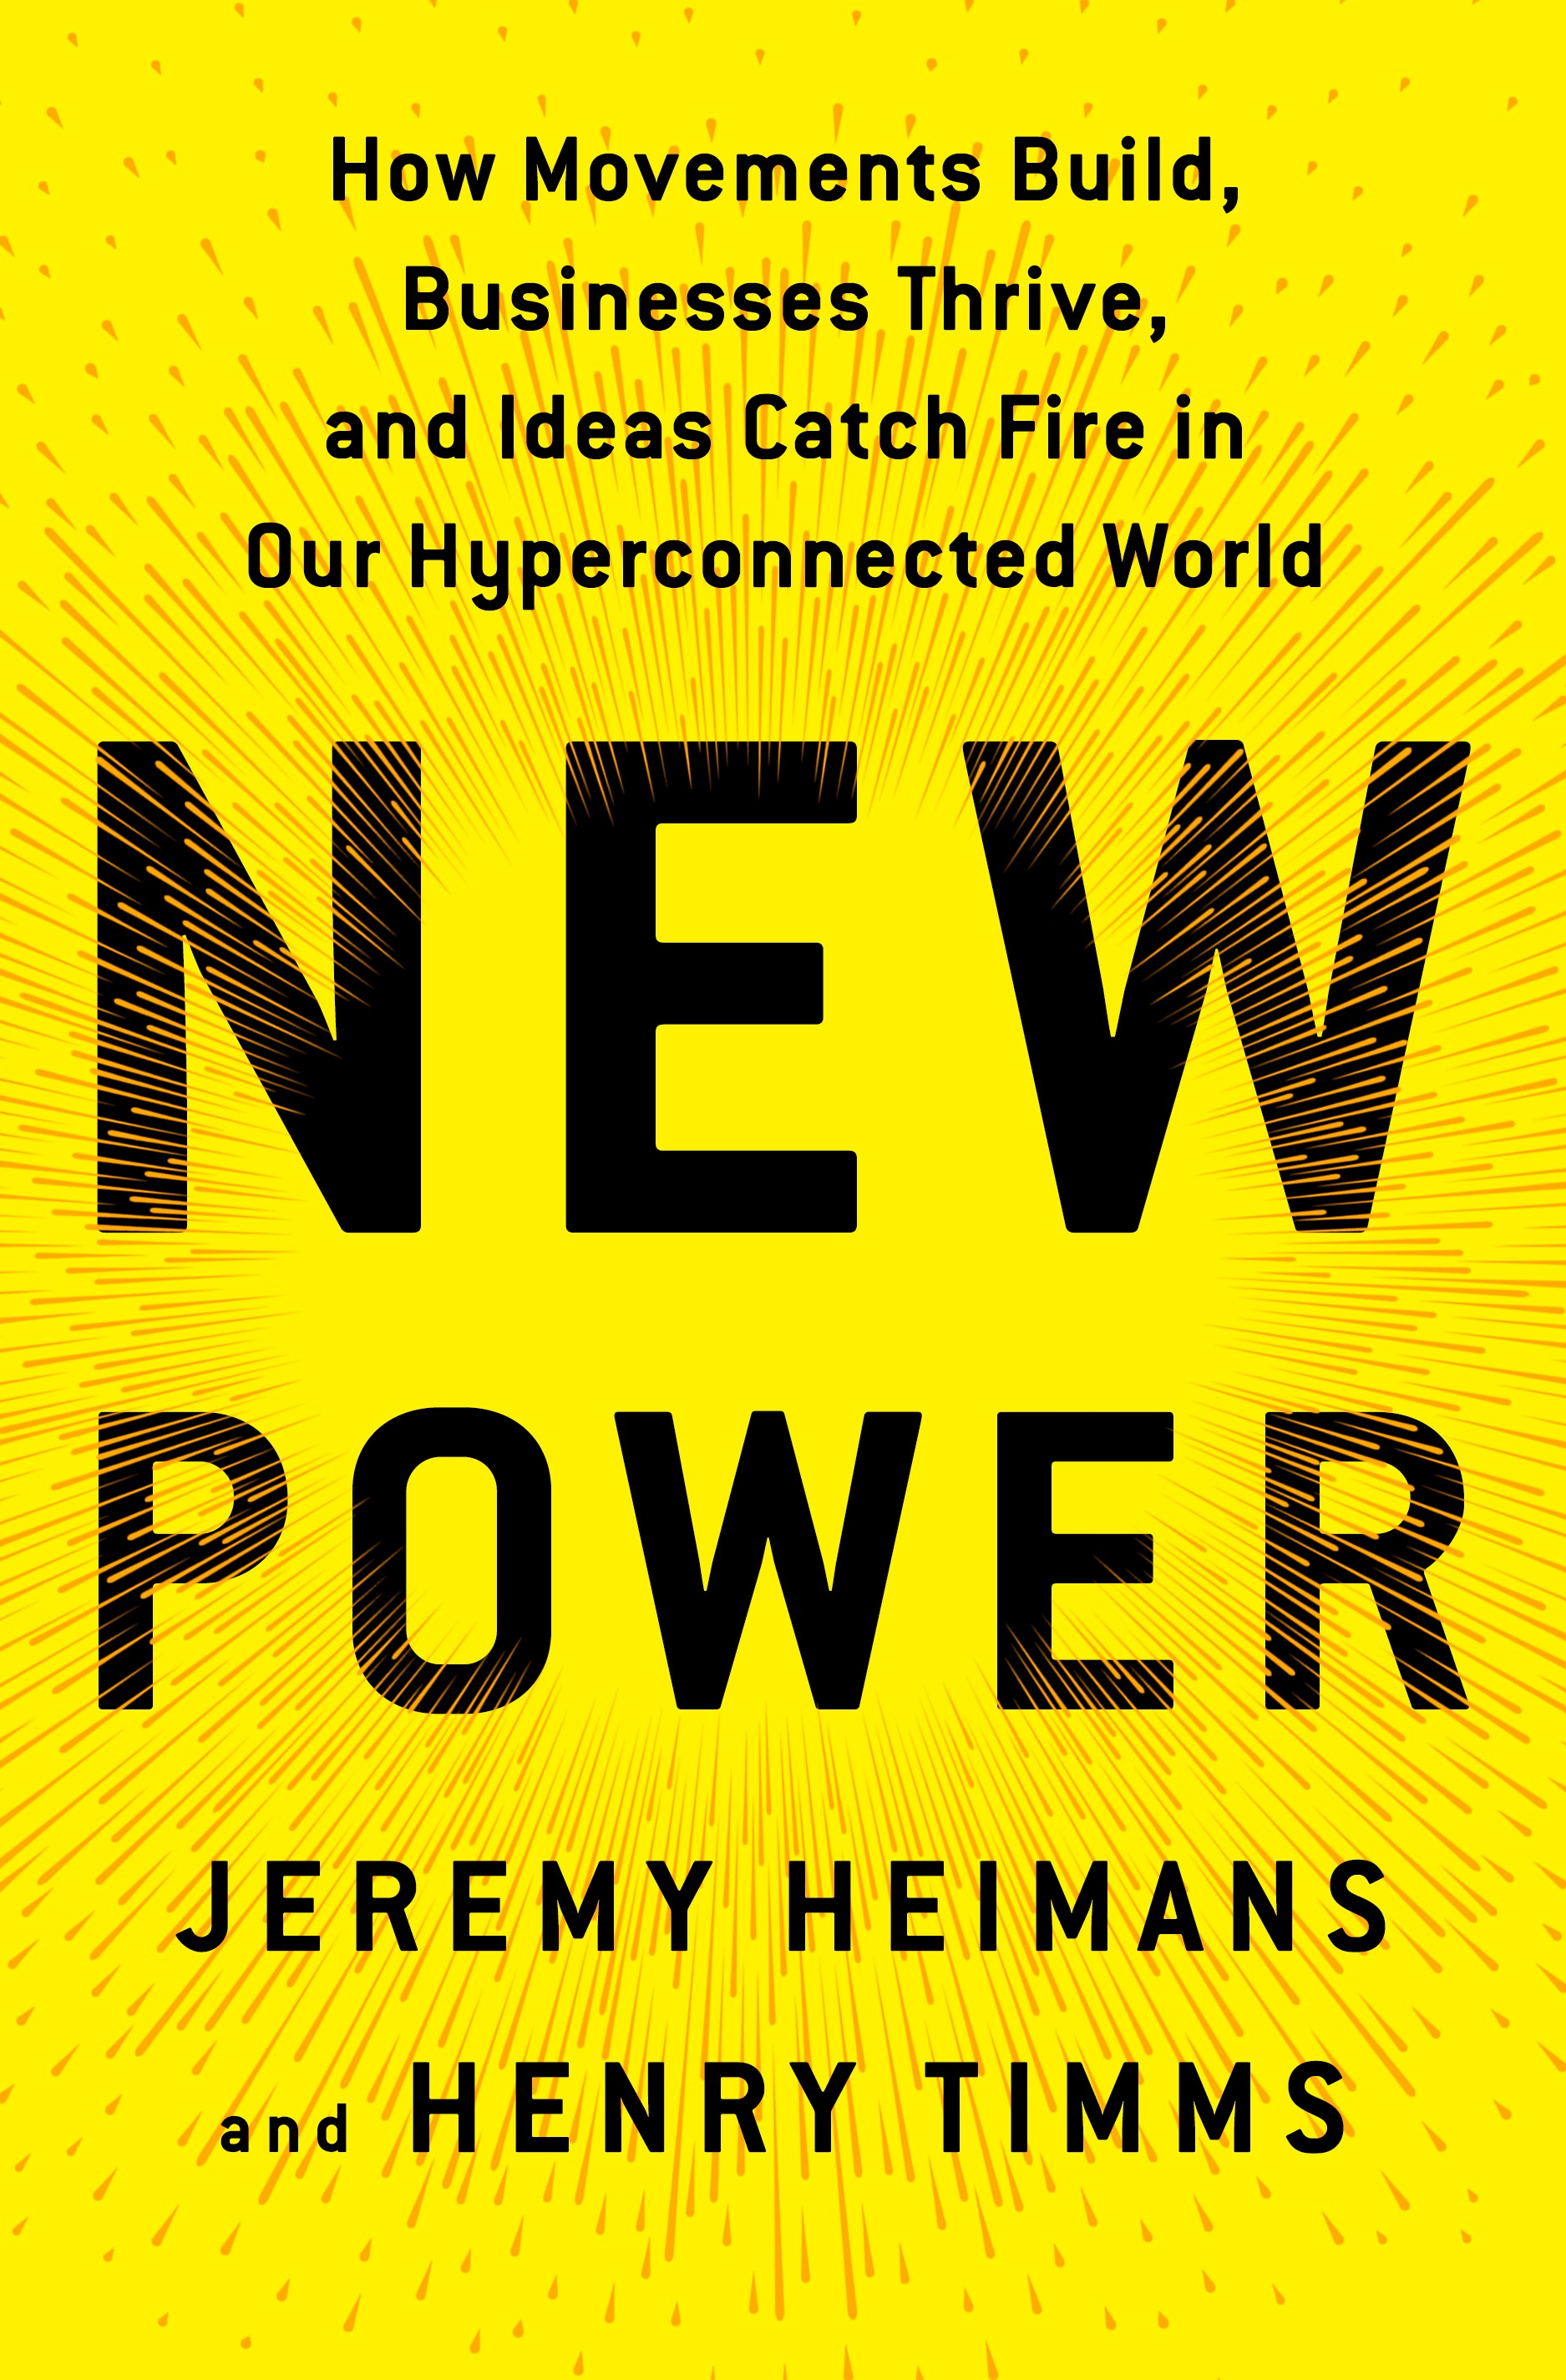 New Power Book Cover Image.jpg